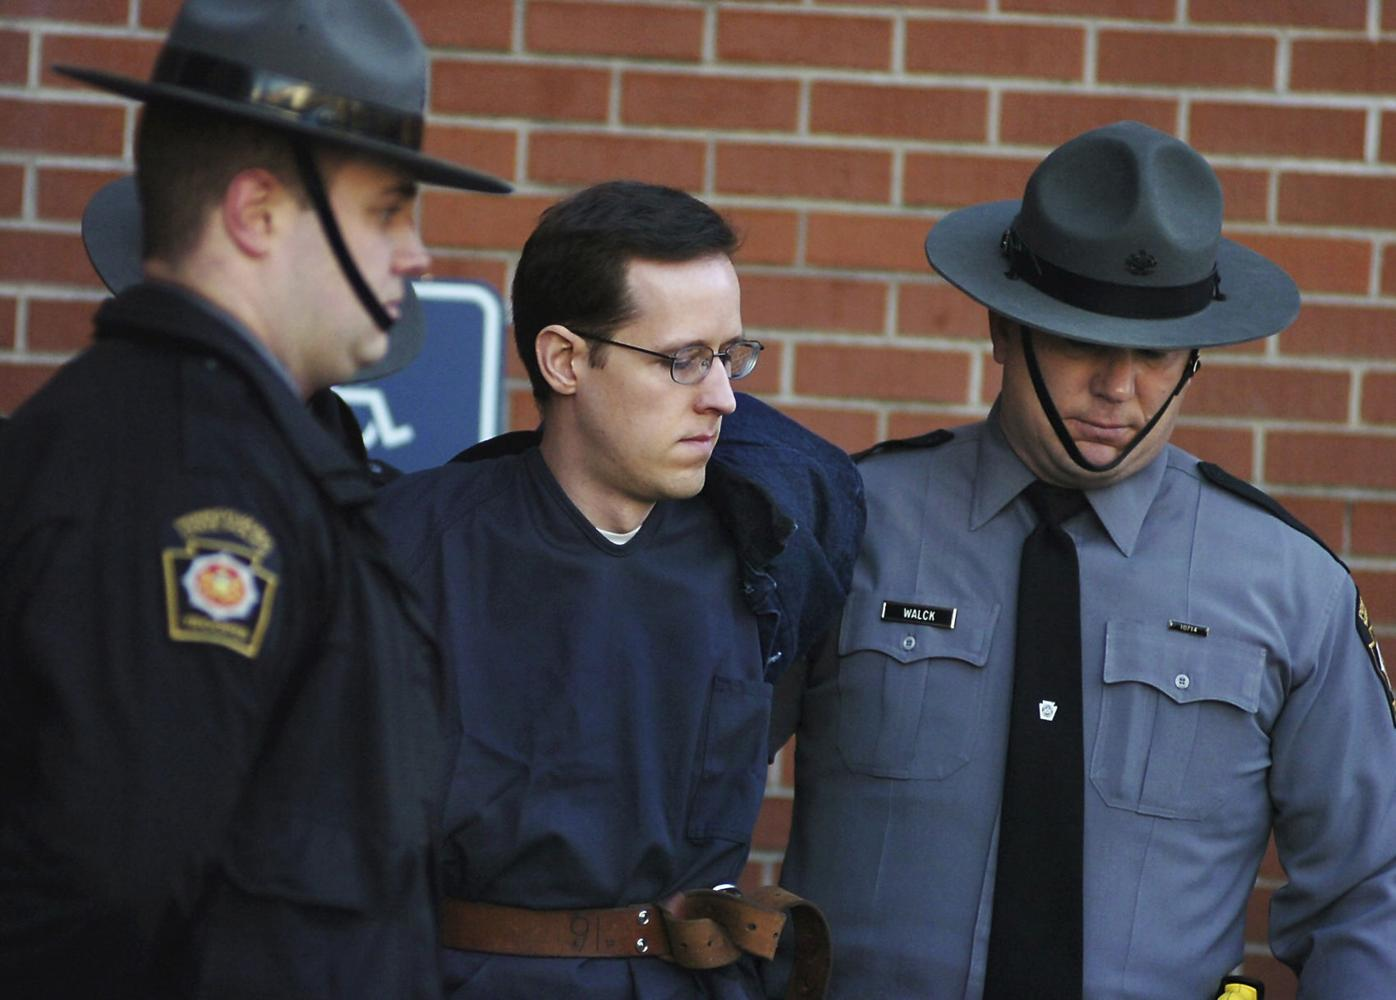 Eric Frein's parents not entitled to return of guns, Pike DA says